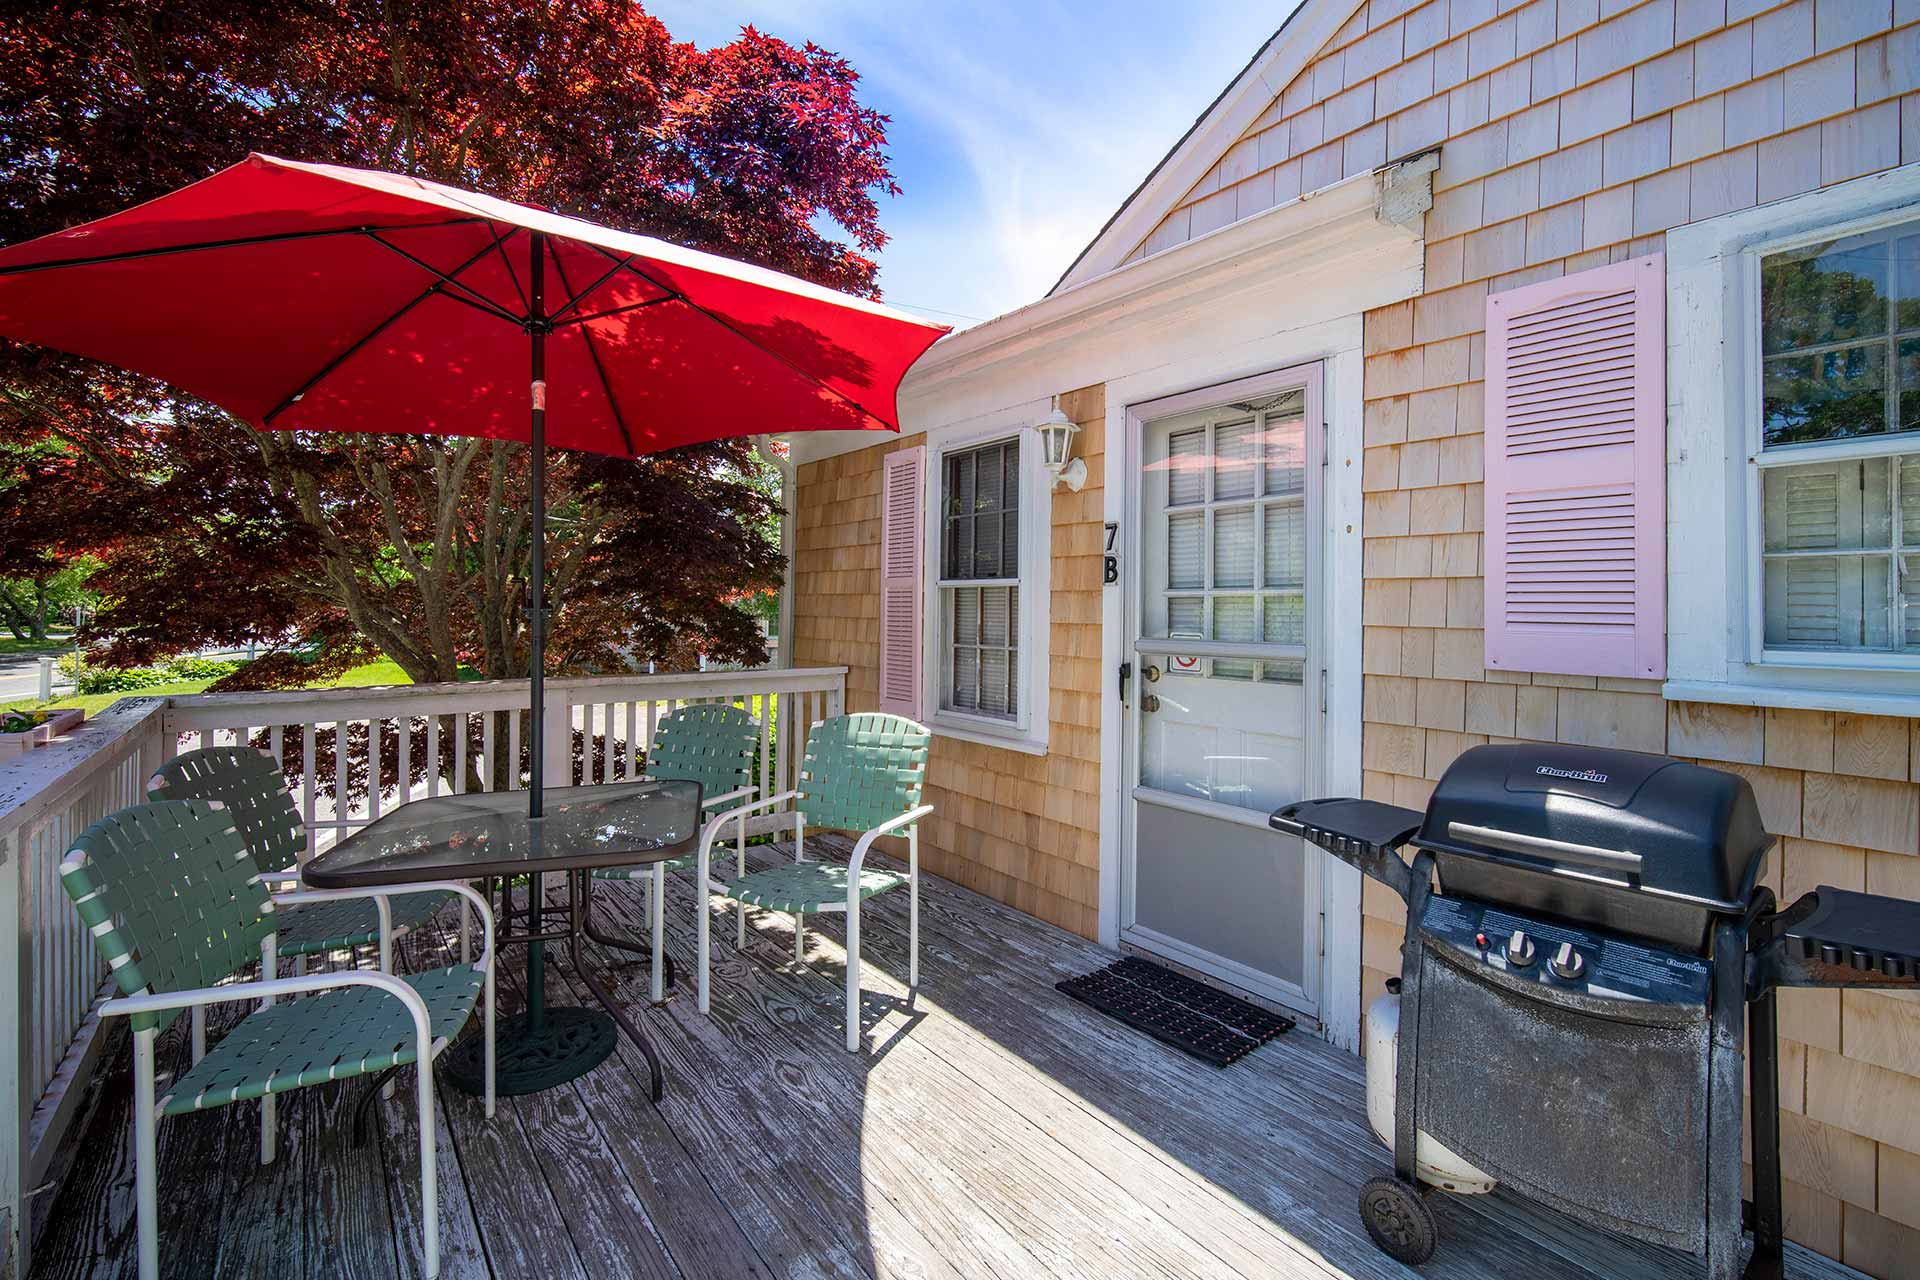 Cape Cod Studio Rental Patio